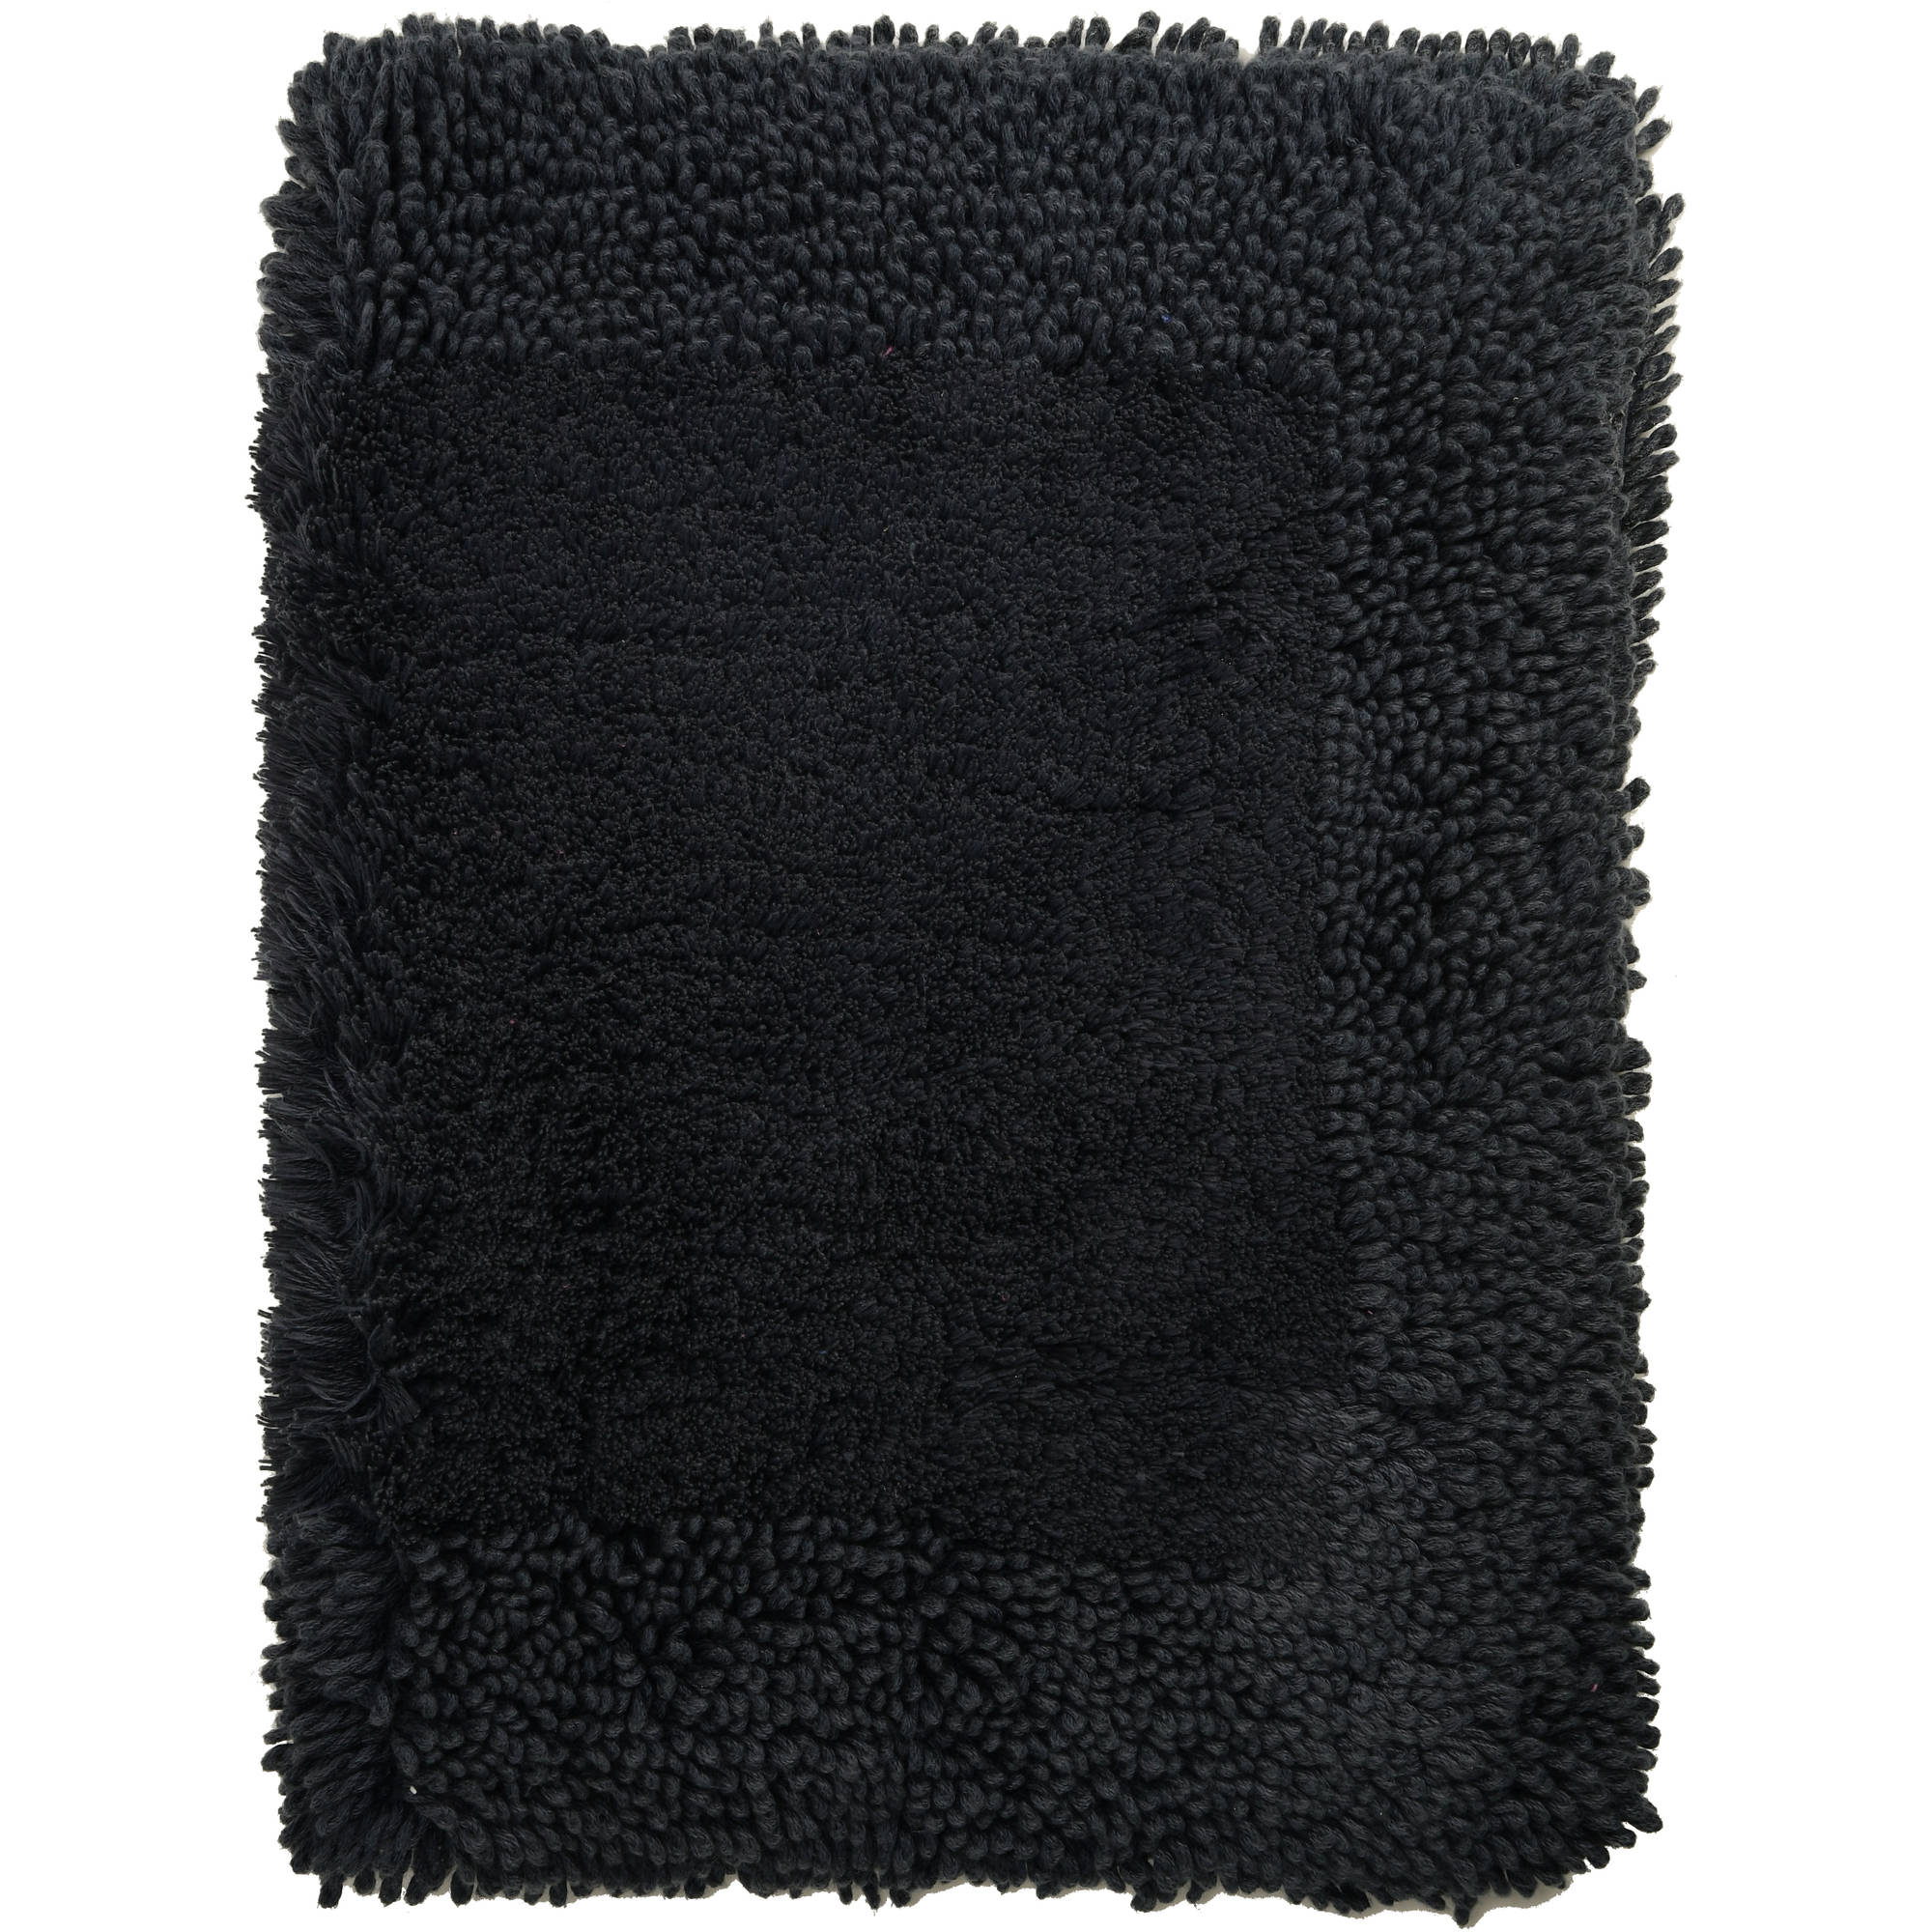 Hotel Style Cotton Lyocell Bath Rug by Welspun India Limited